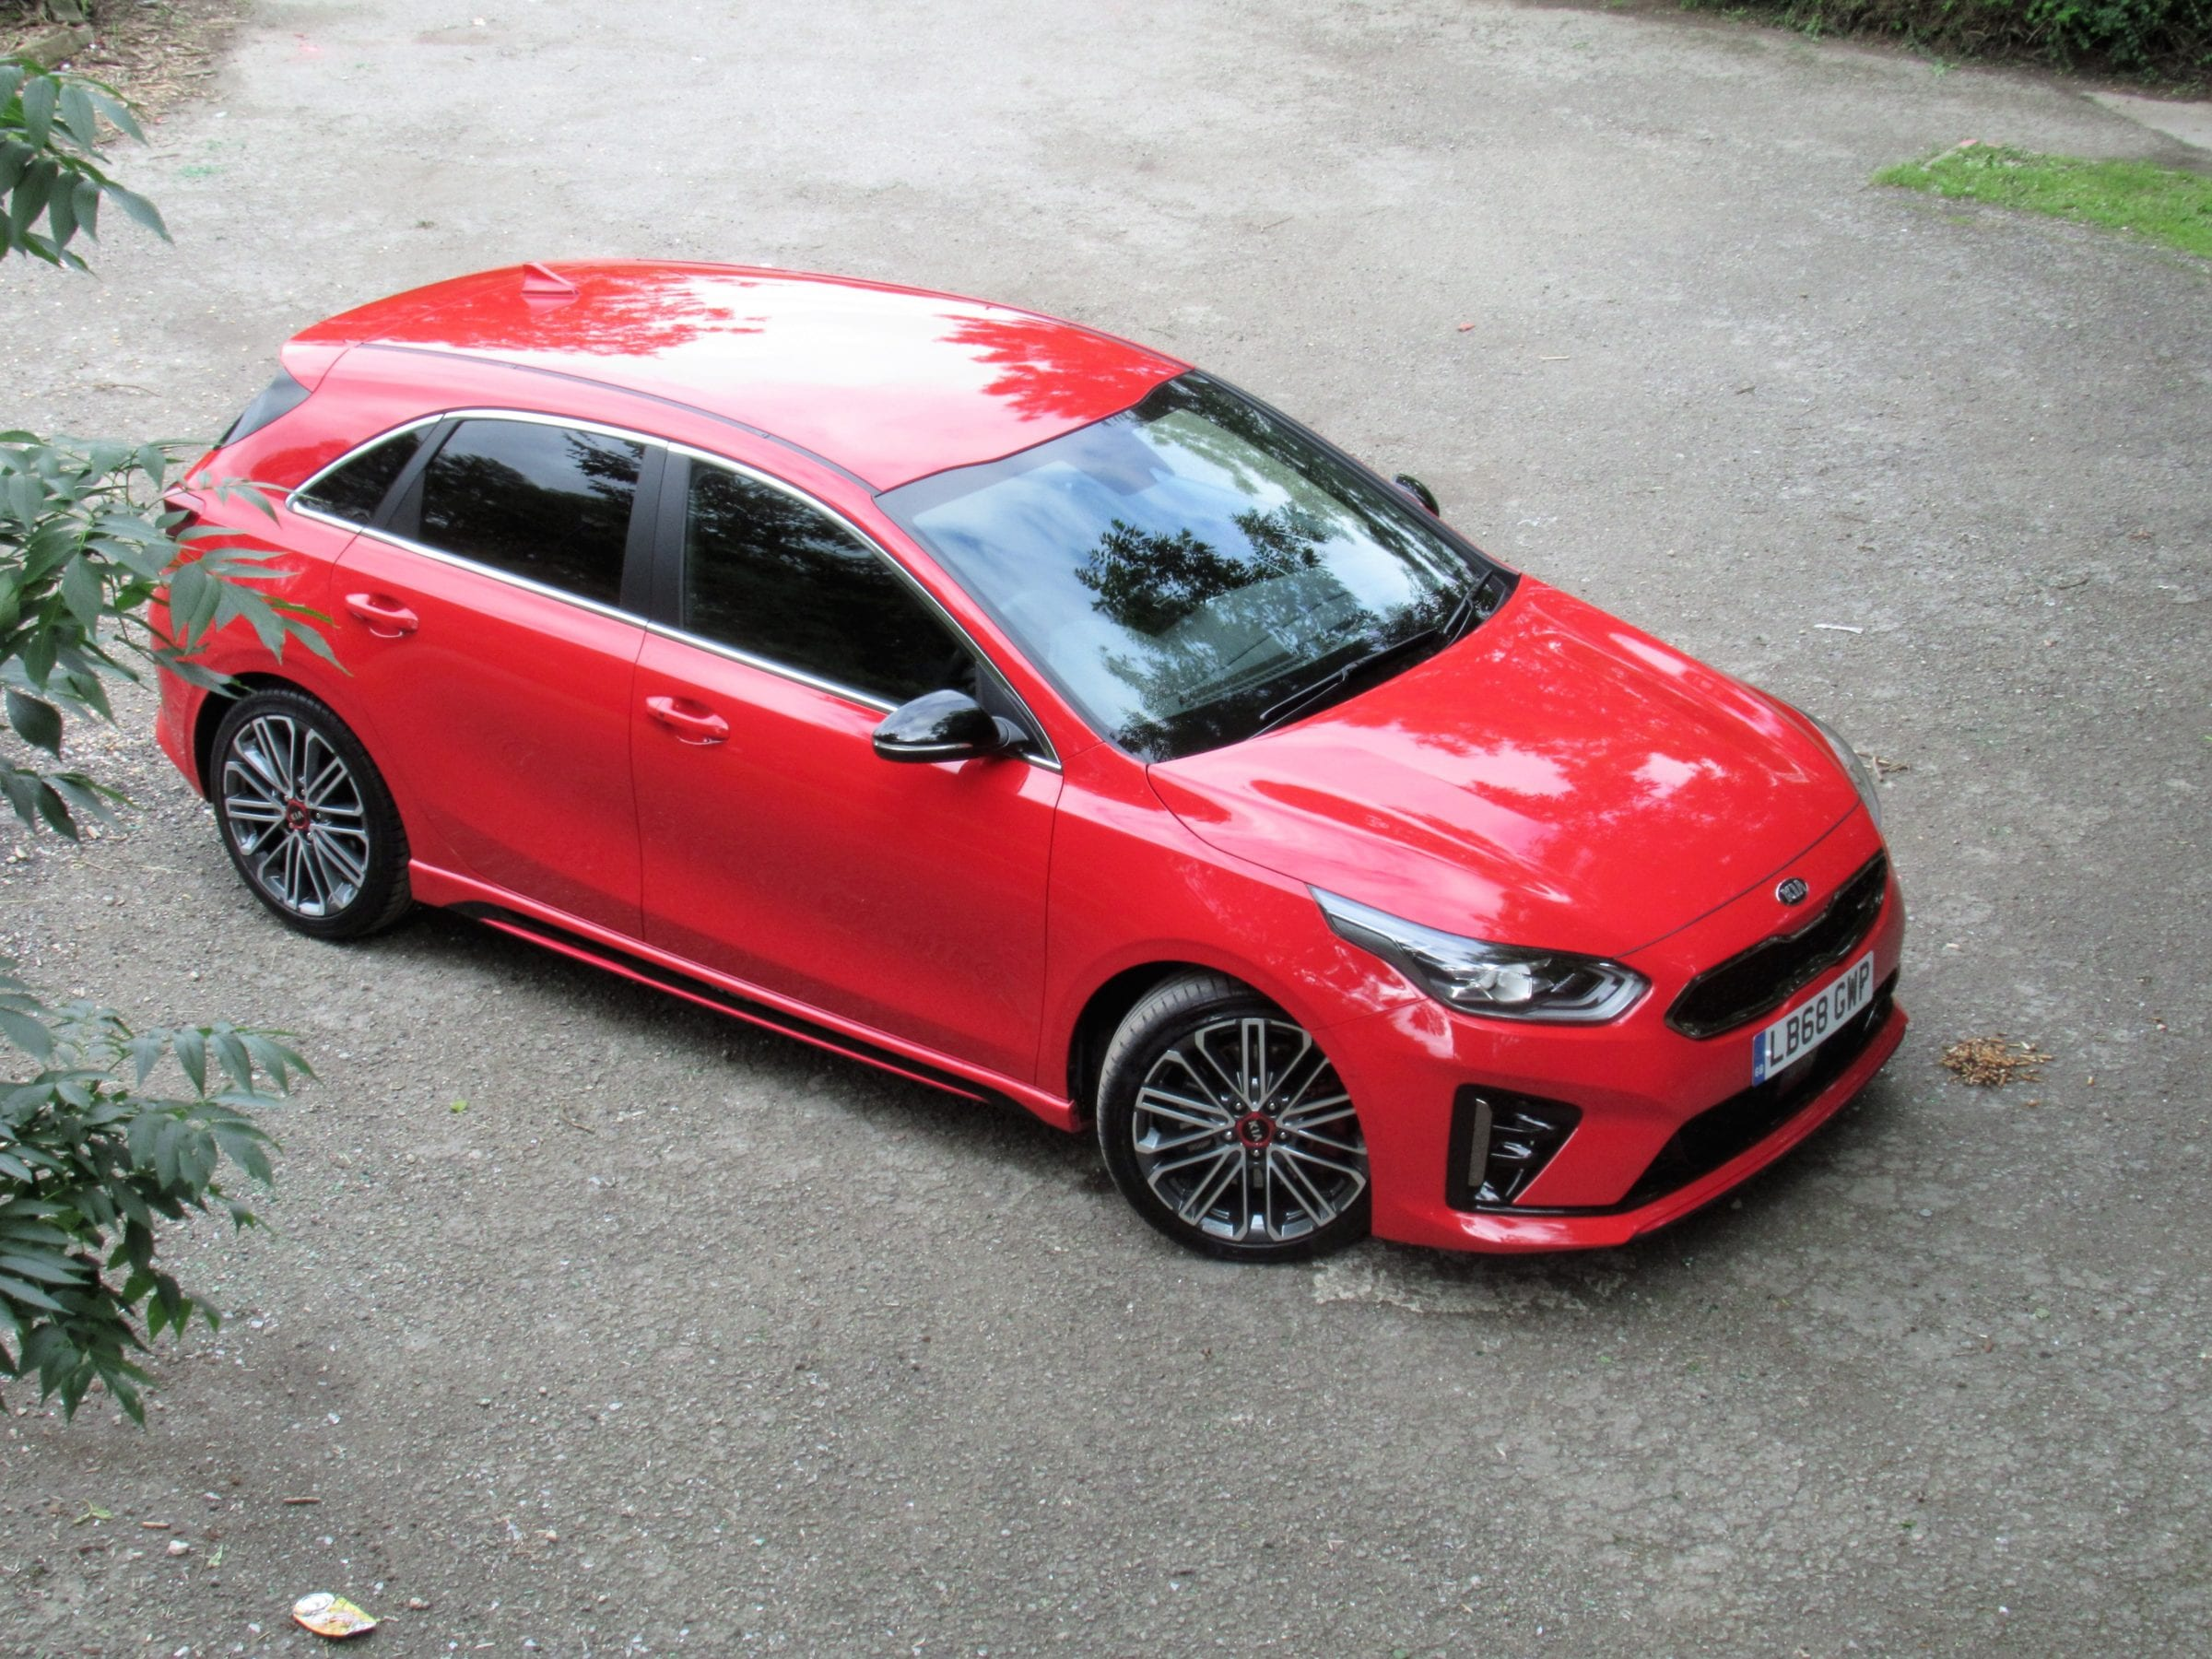 A And B Kia >> Travel And Leisure News And Reviews From Around The World